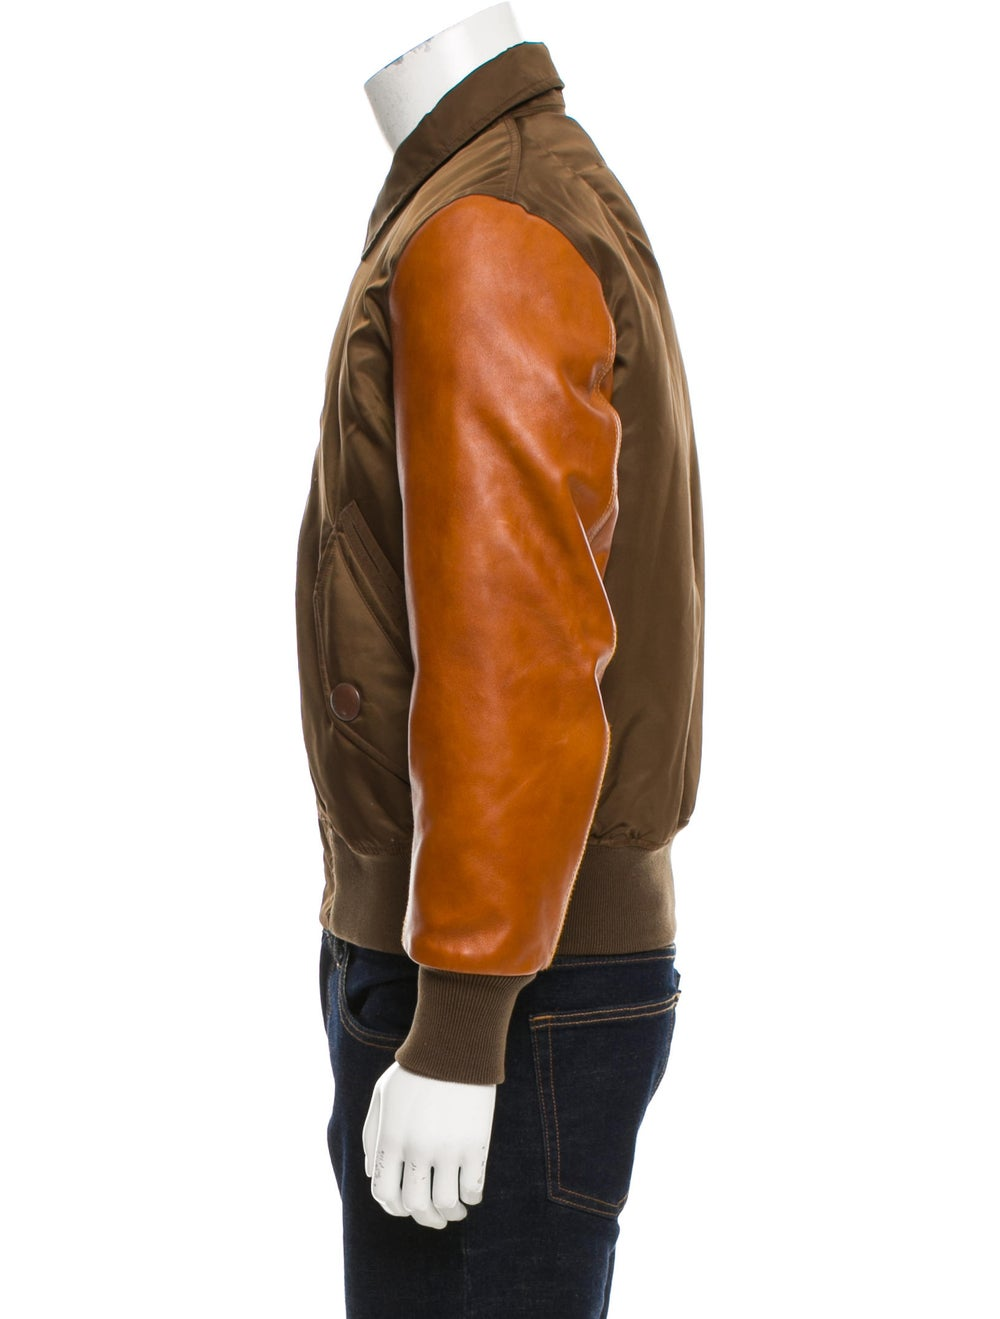 Givenchy Leather-Trimmed Flight Jacket olive - image 2